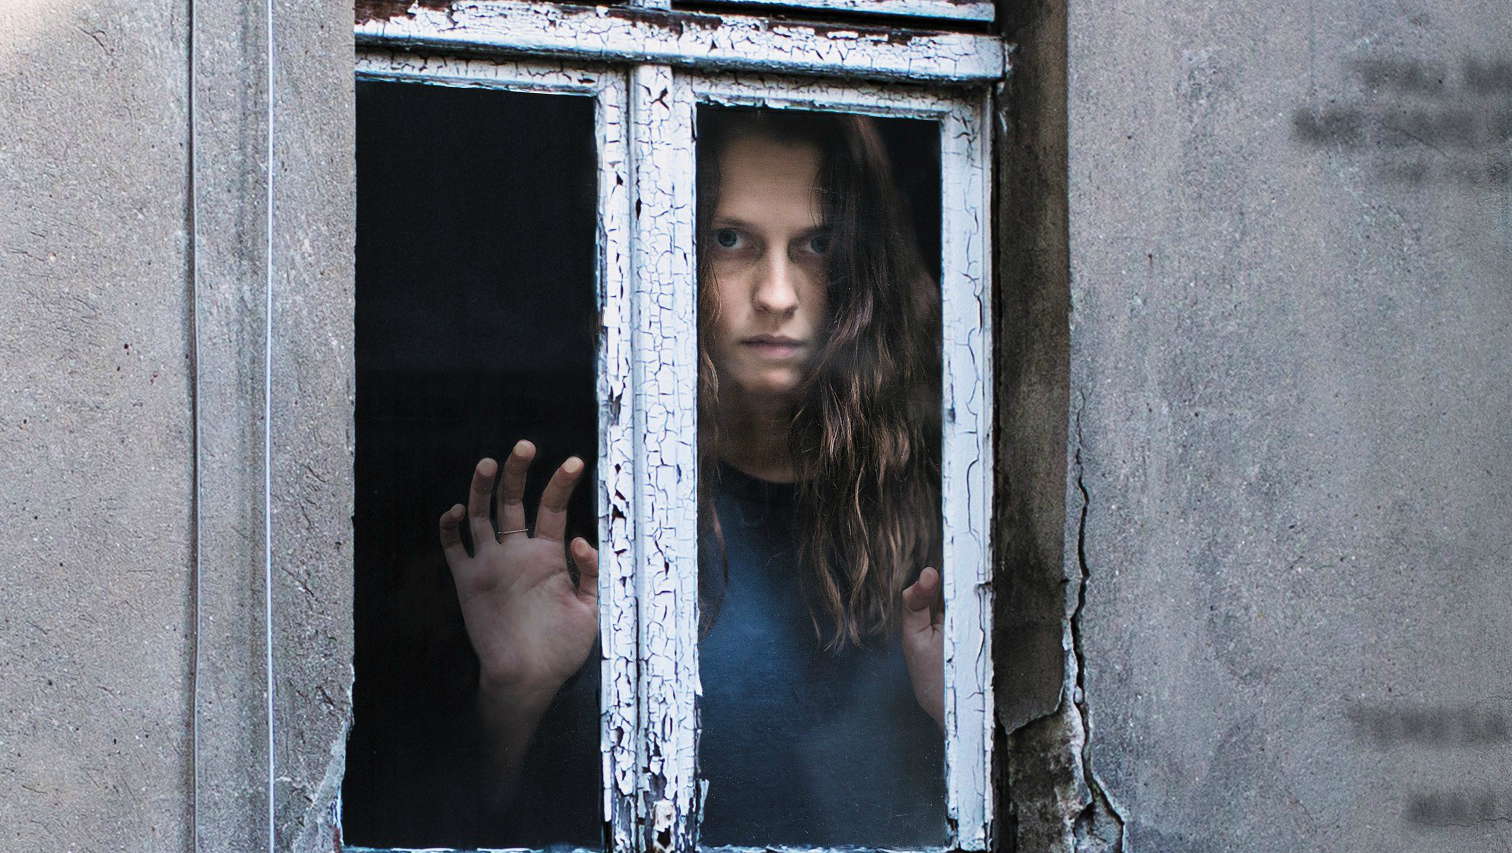 Movie Poster for 'Berlin Syndrome' starring Teresa Palmer